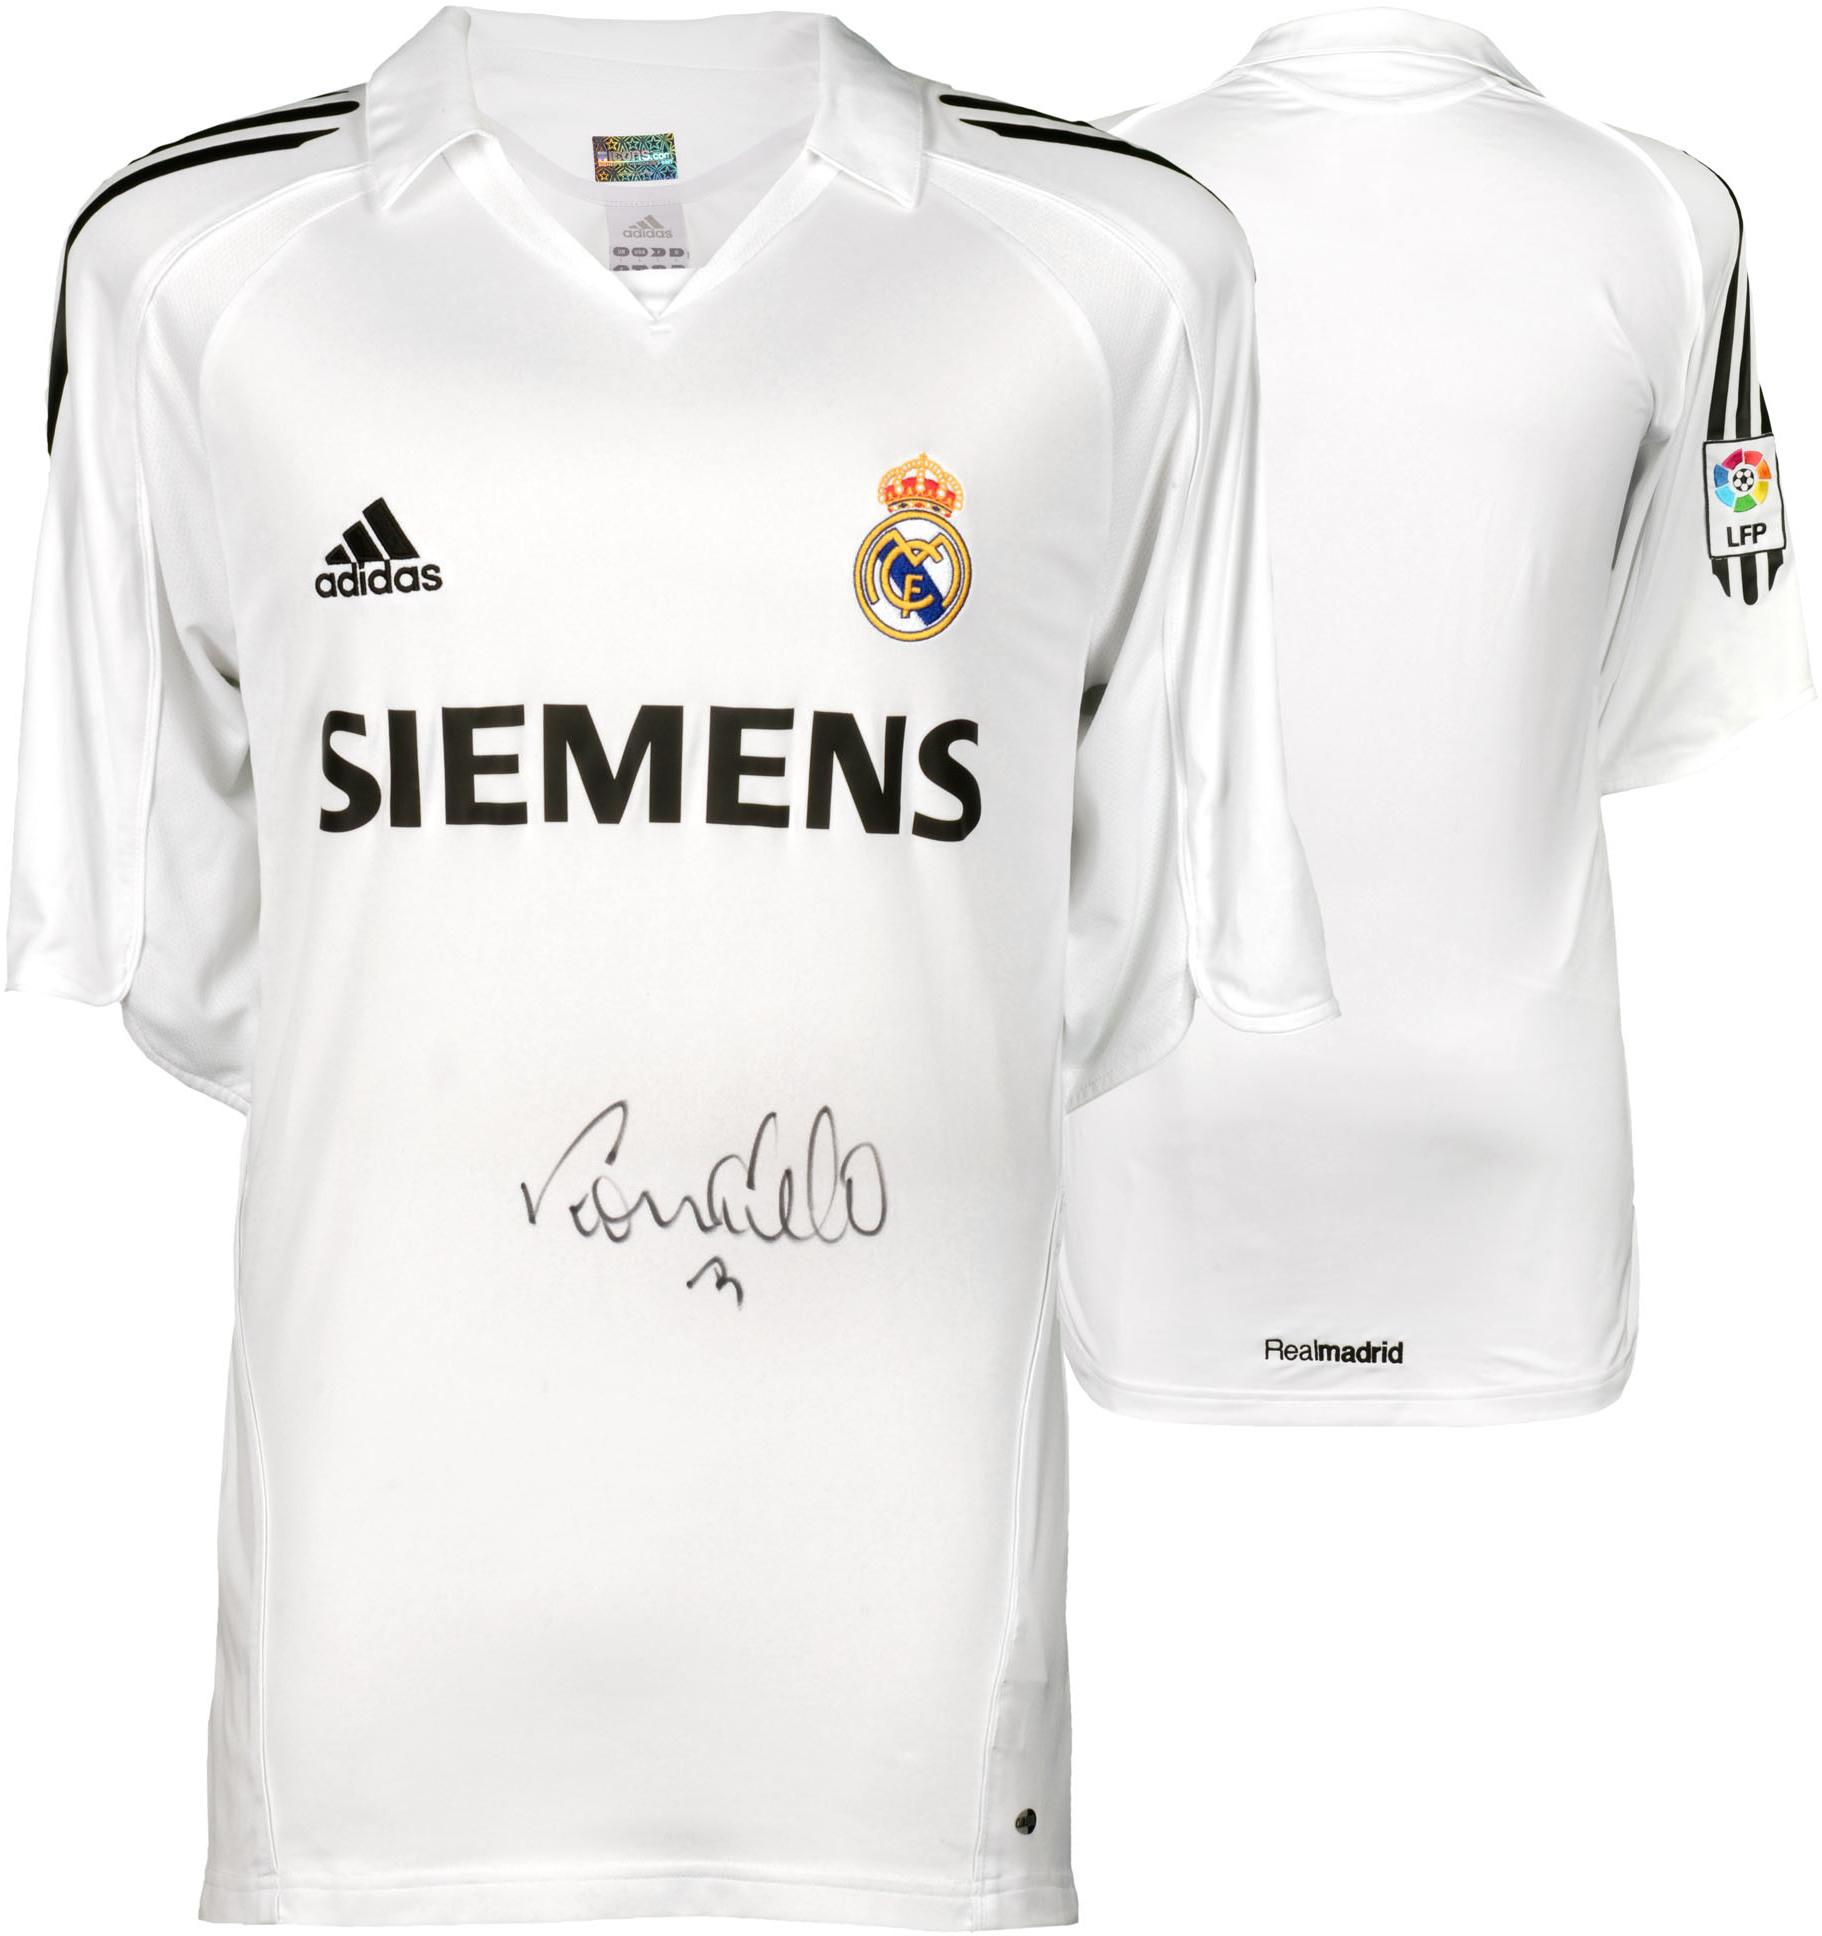 wholesale dealer 897f9 6996f Ronaldo Real Madrid Autographed 2005-2006 White Adidas Front-Signed Jersey  - ICONS - Fanatics Authentic Certified